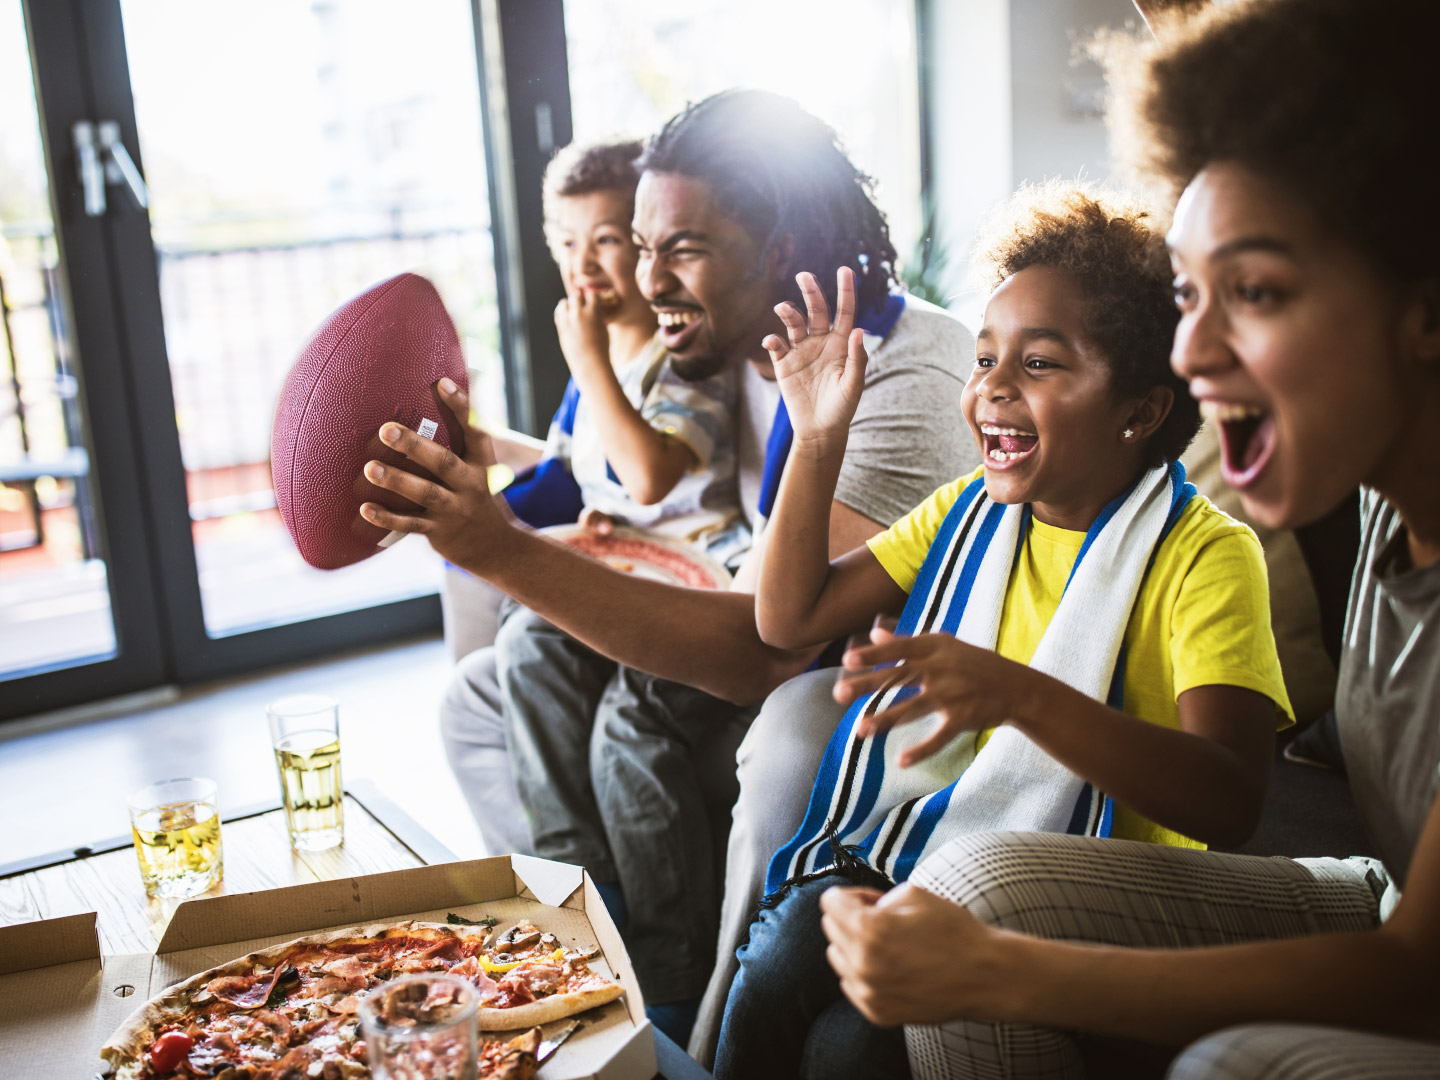 Fans cheering for their football team and eating pizza